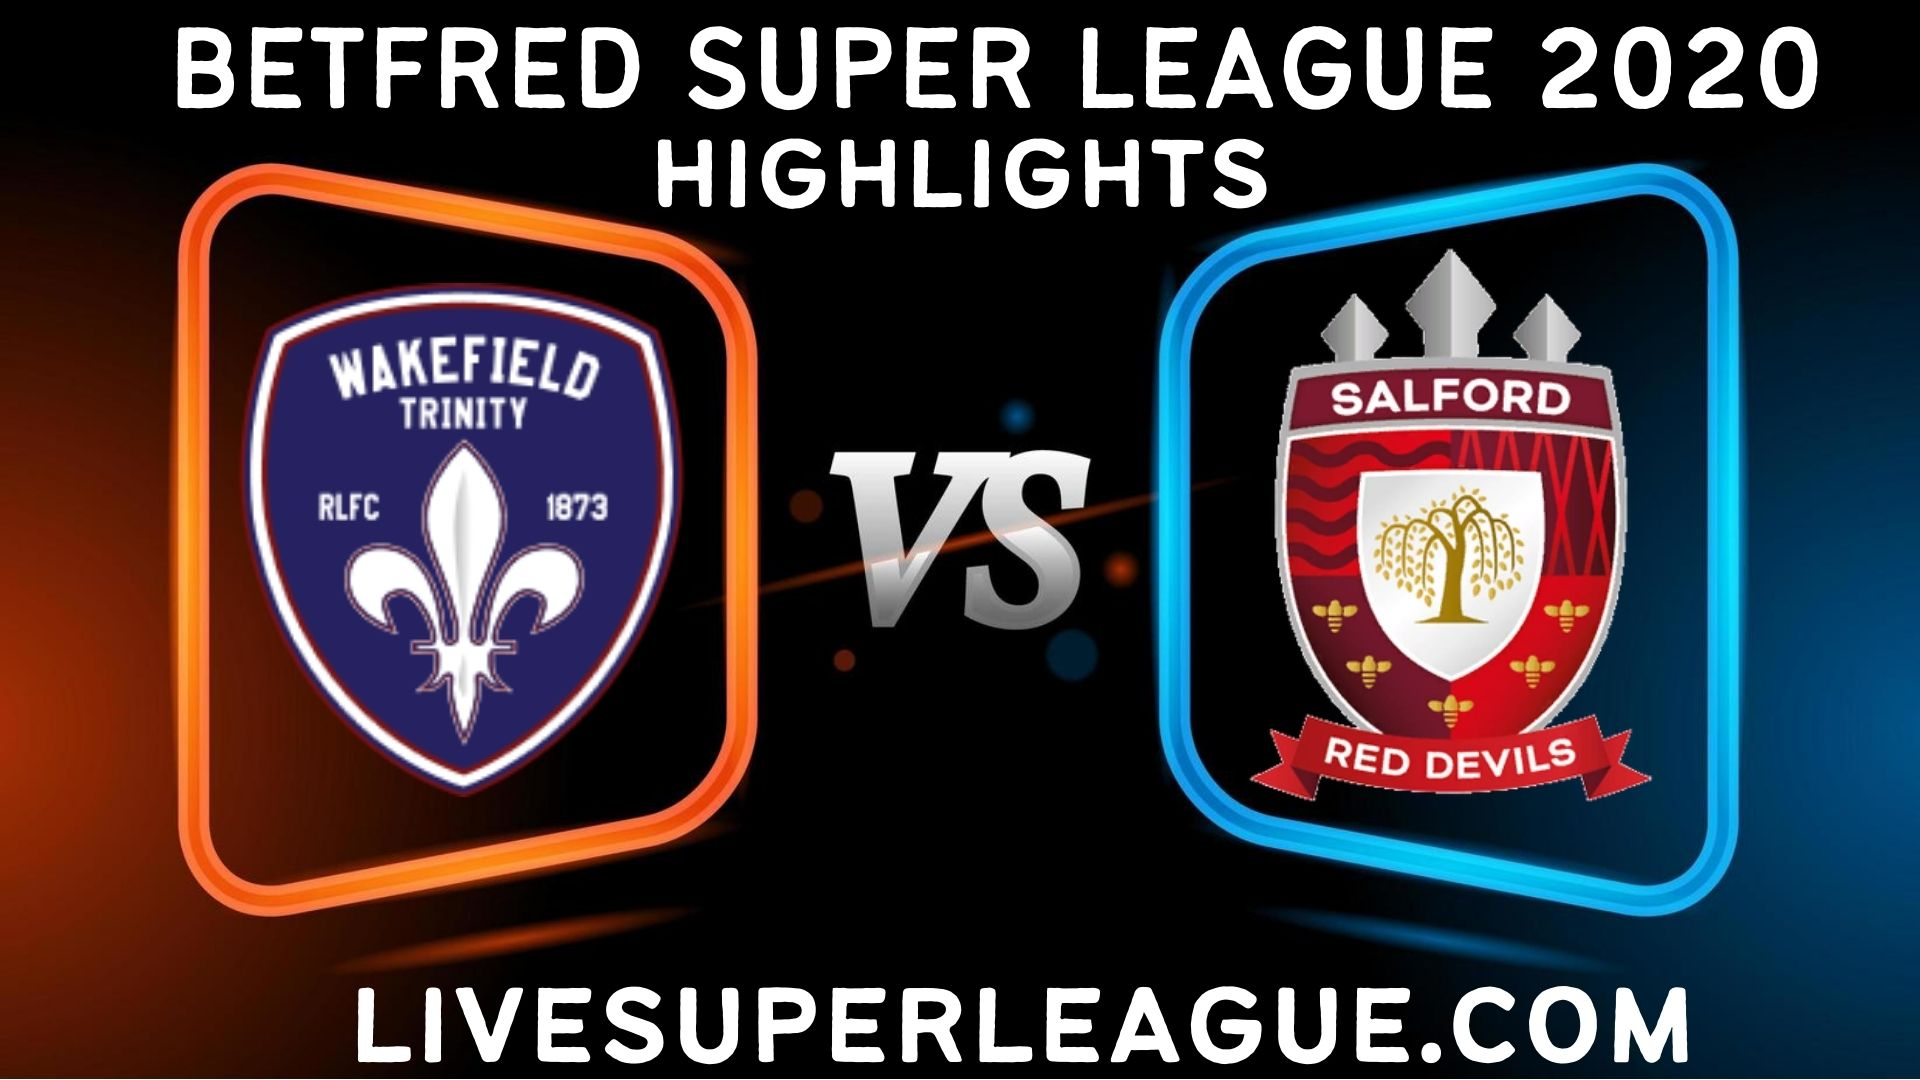 Wakefield Trinity vs Salford Red Devils Highlights 2020 Rd 20